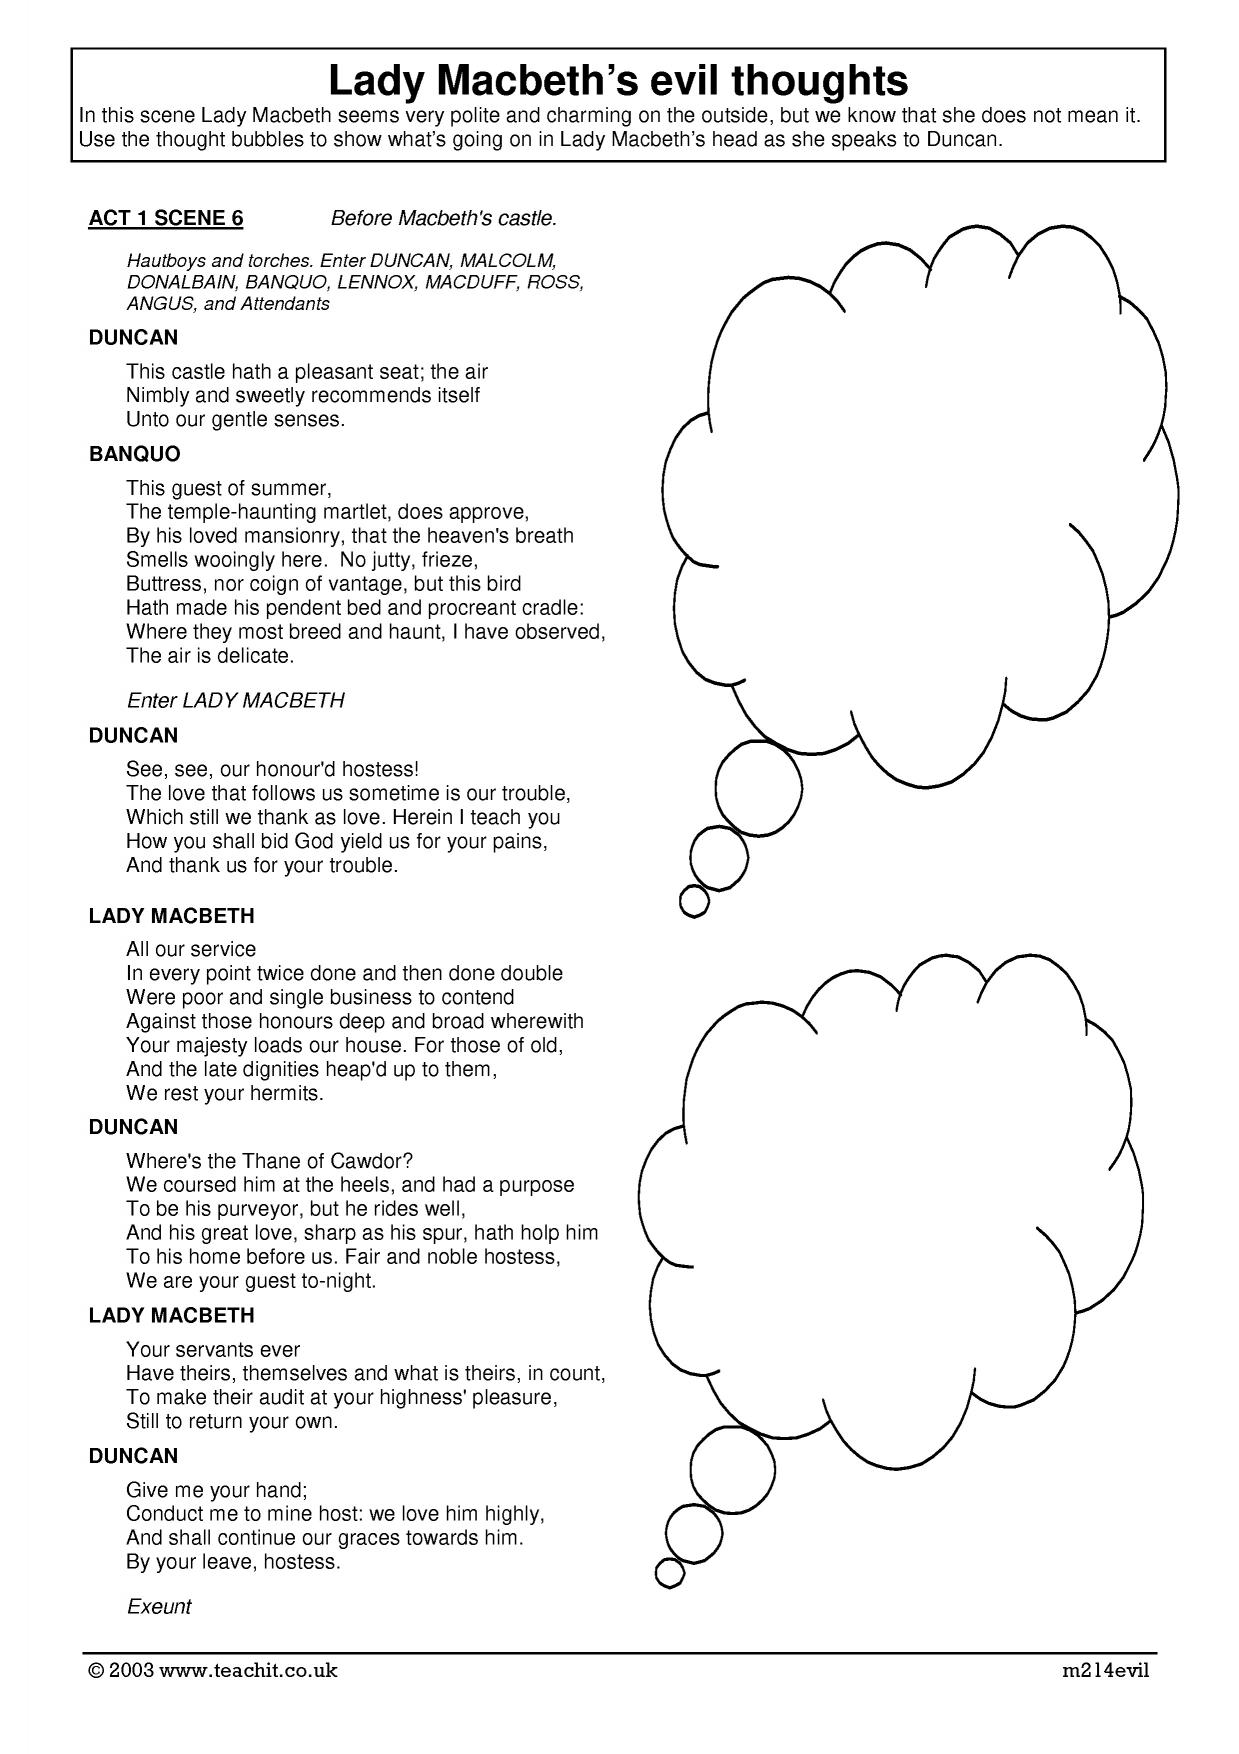 the dramatic changes in act 1 scene 5 of macbeth essay Macbeth - character changes, free study guides and book notes including comprehensive chapter analysis, complete summary analysis, author biography information, character profiles, theme analysis, metaphor analysis, and top ten quotes on classic literature.